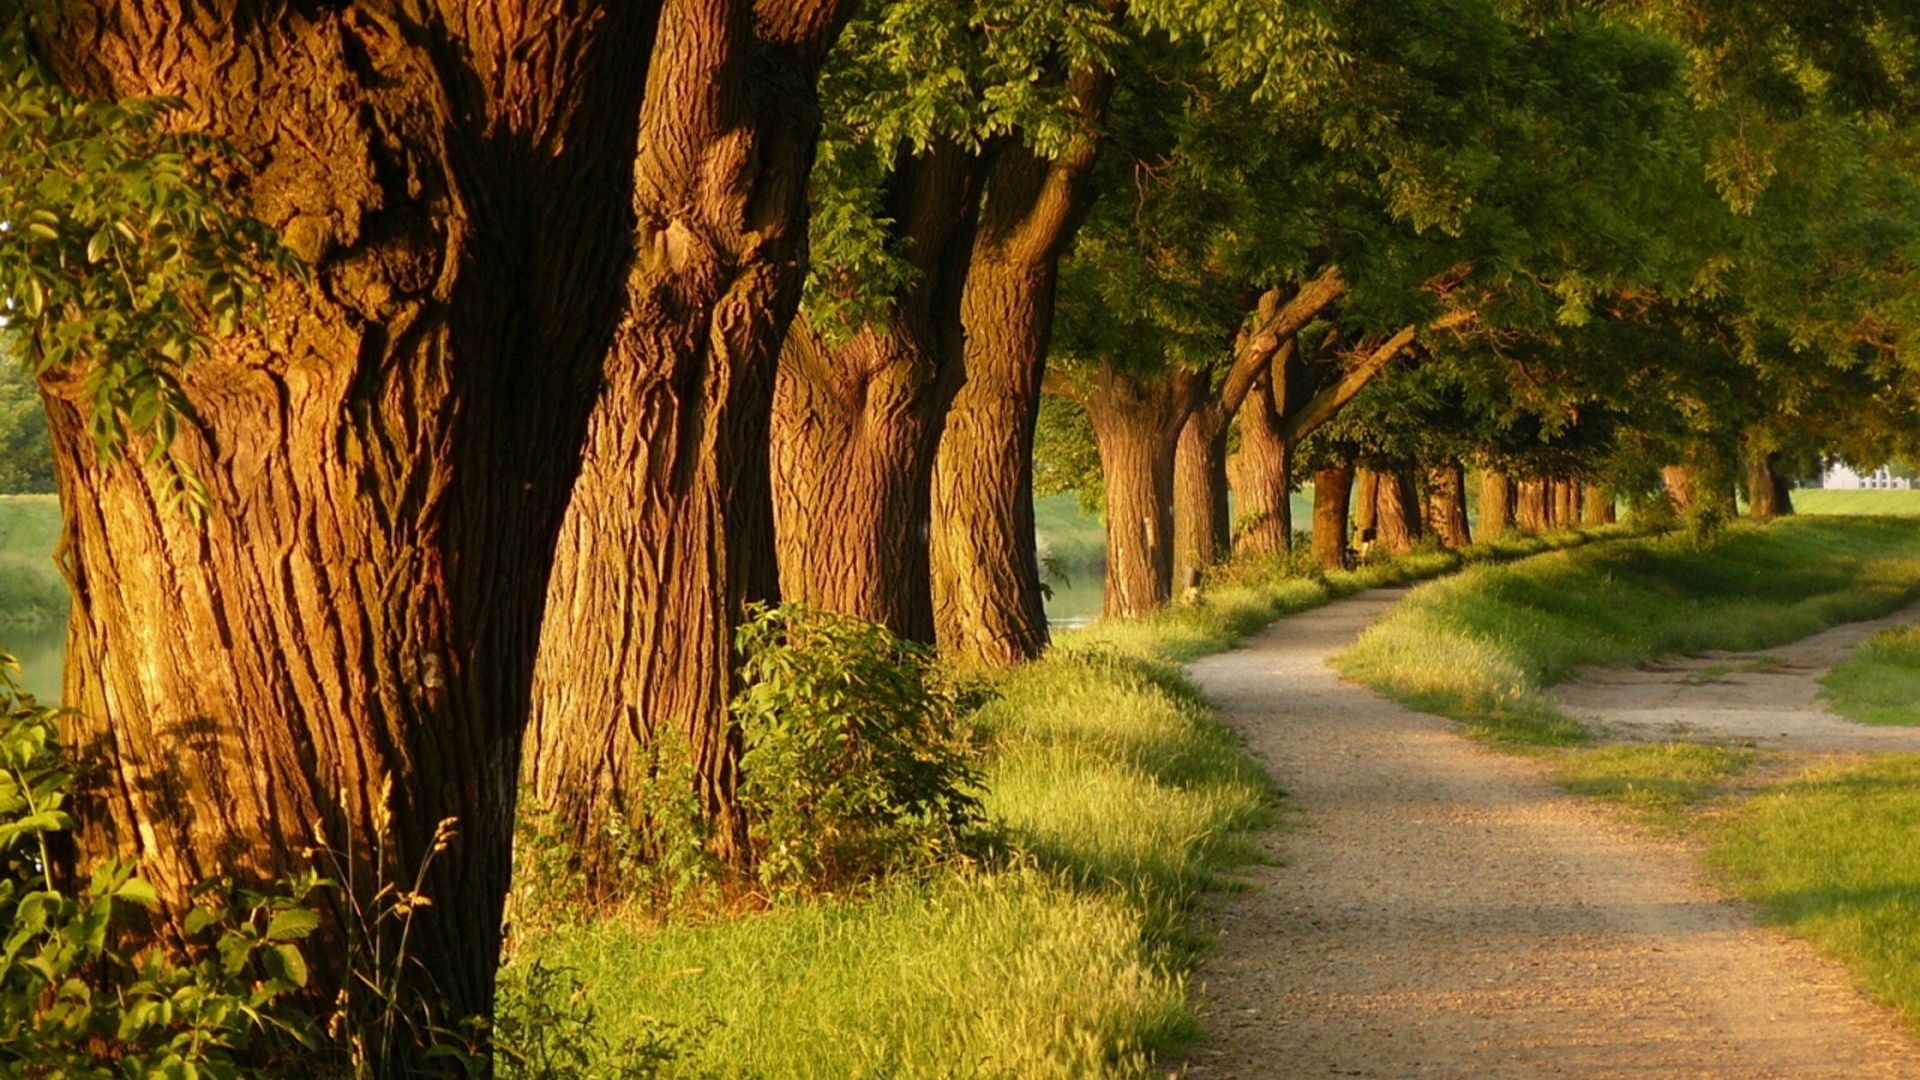 The Alley Of Trees